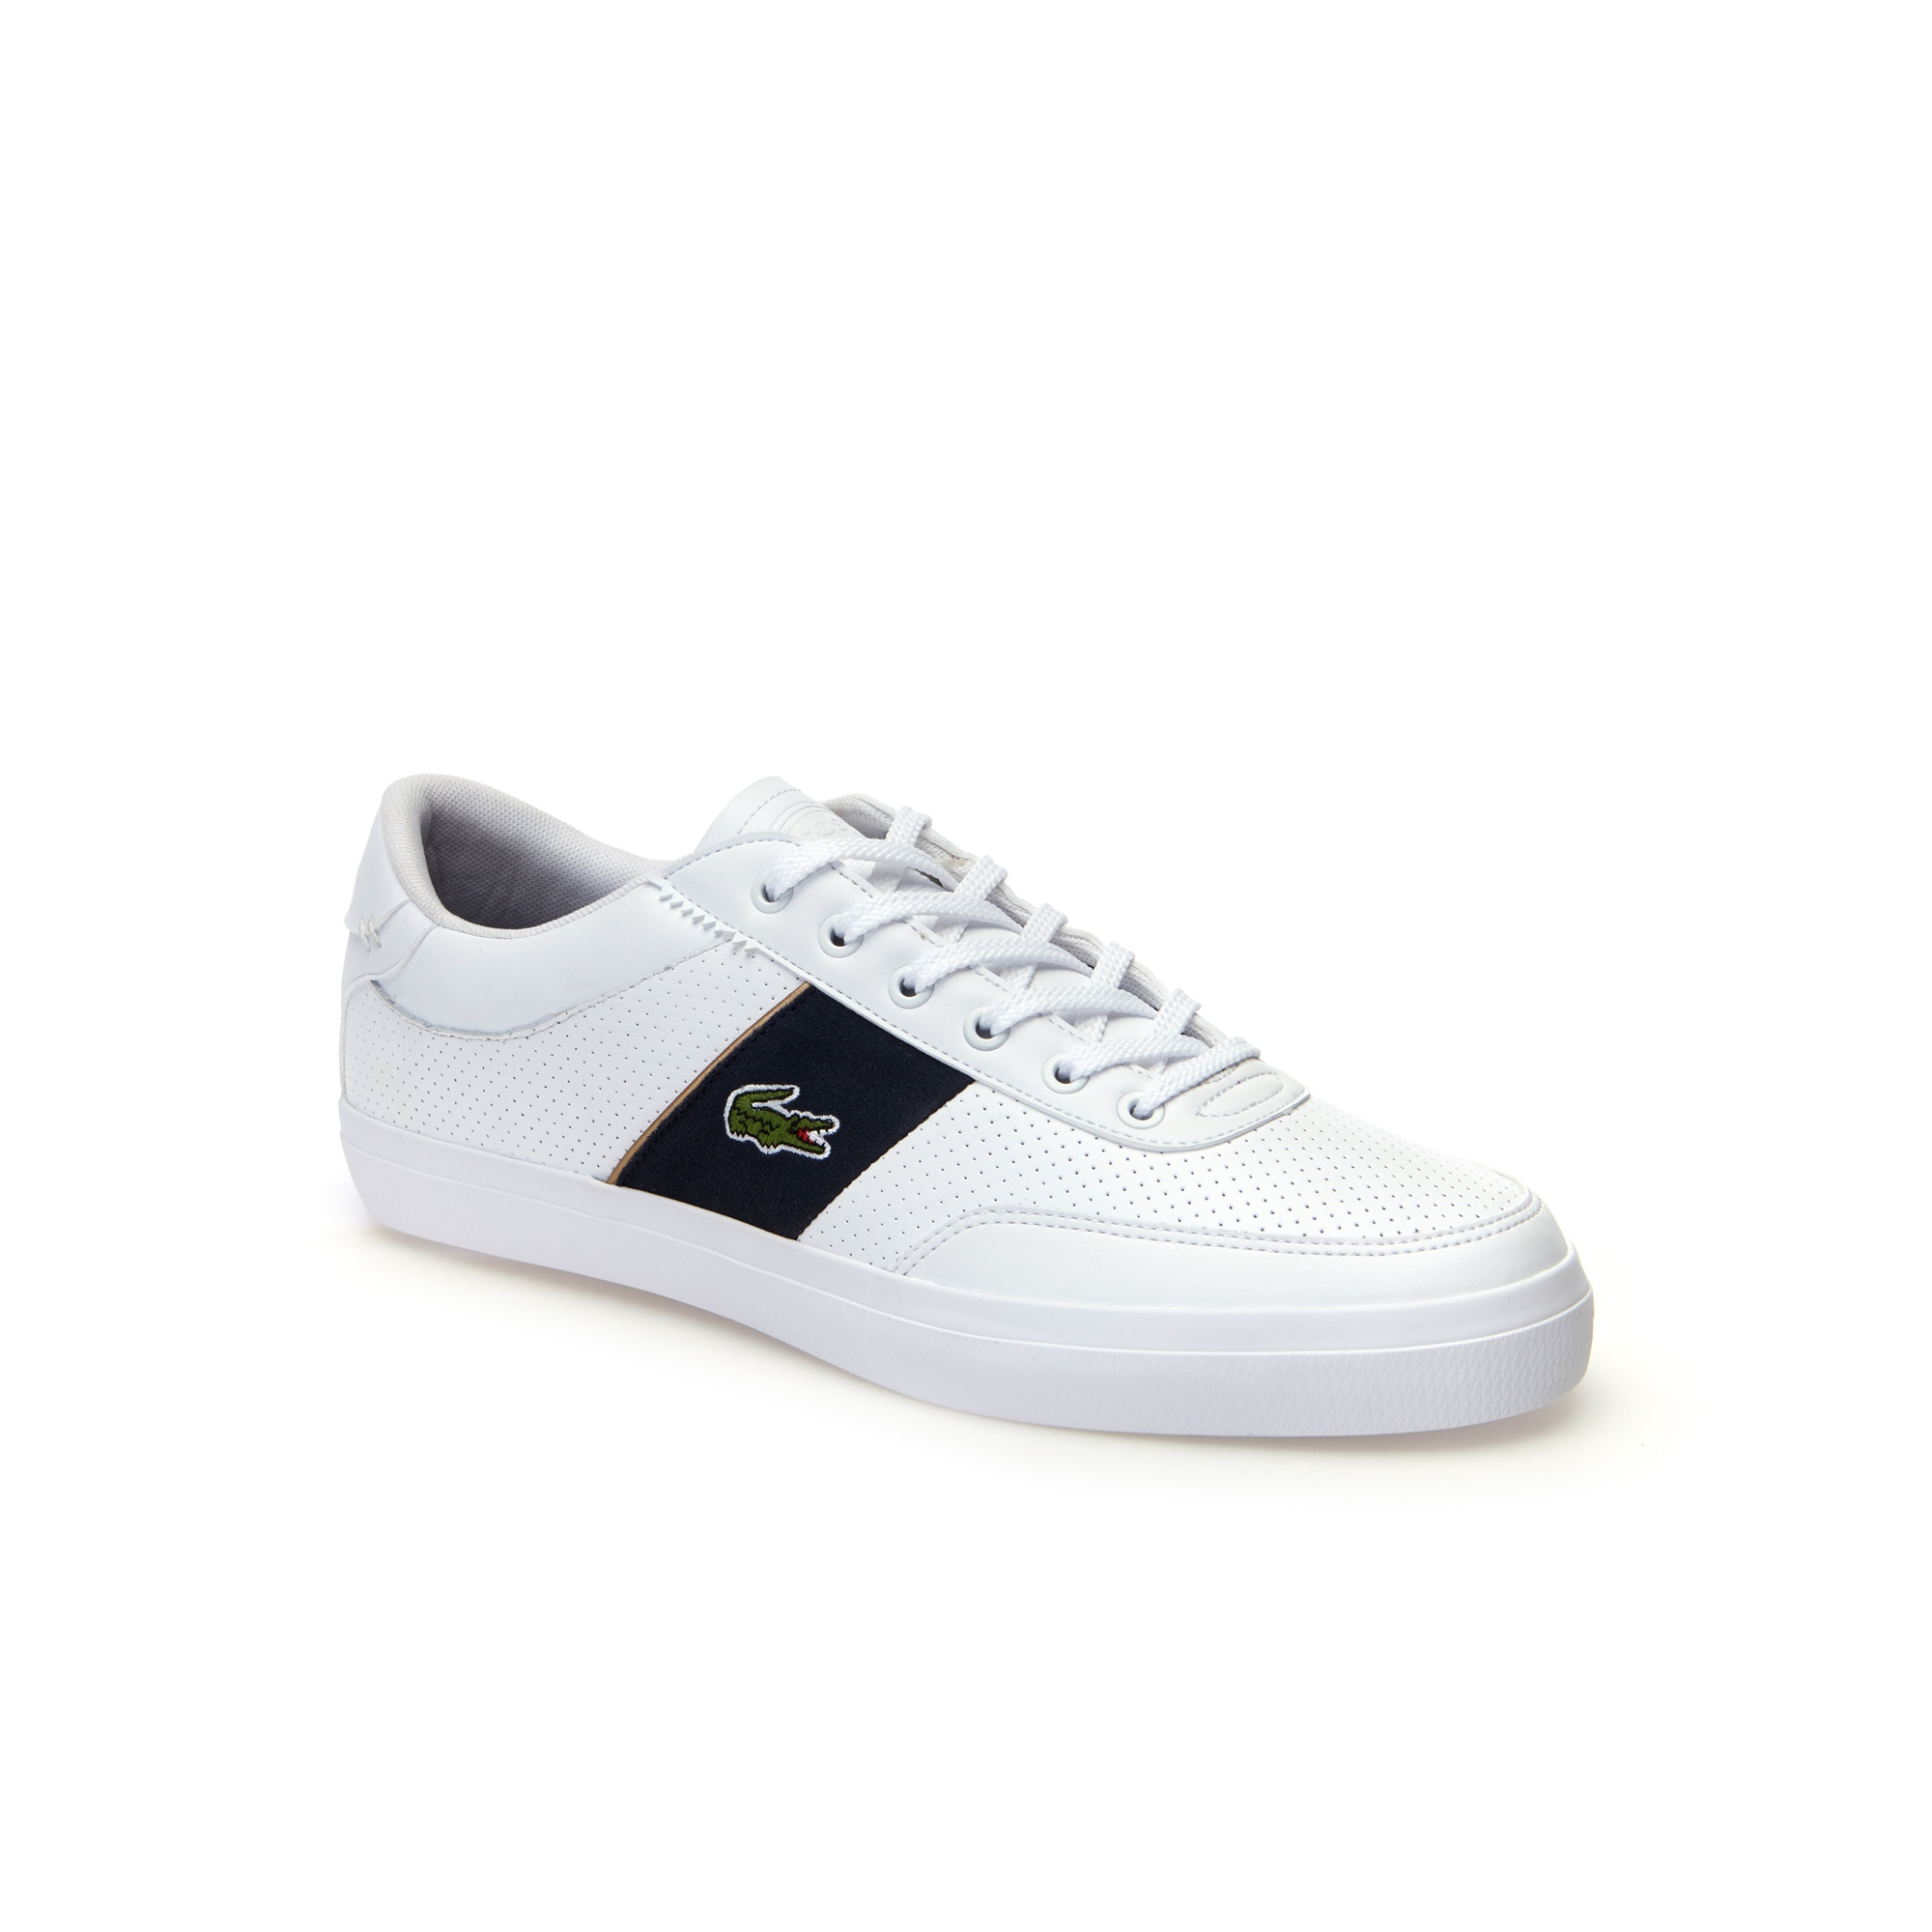 Men's Court-Master Nappa Leather Trainers